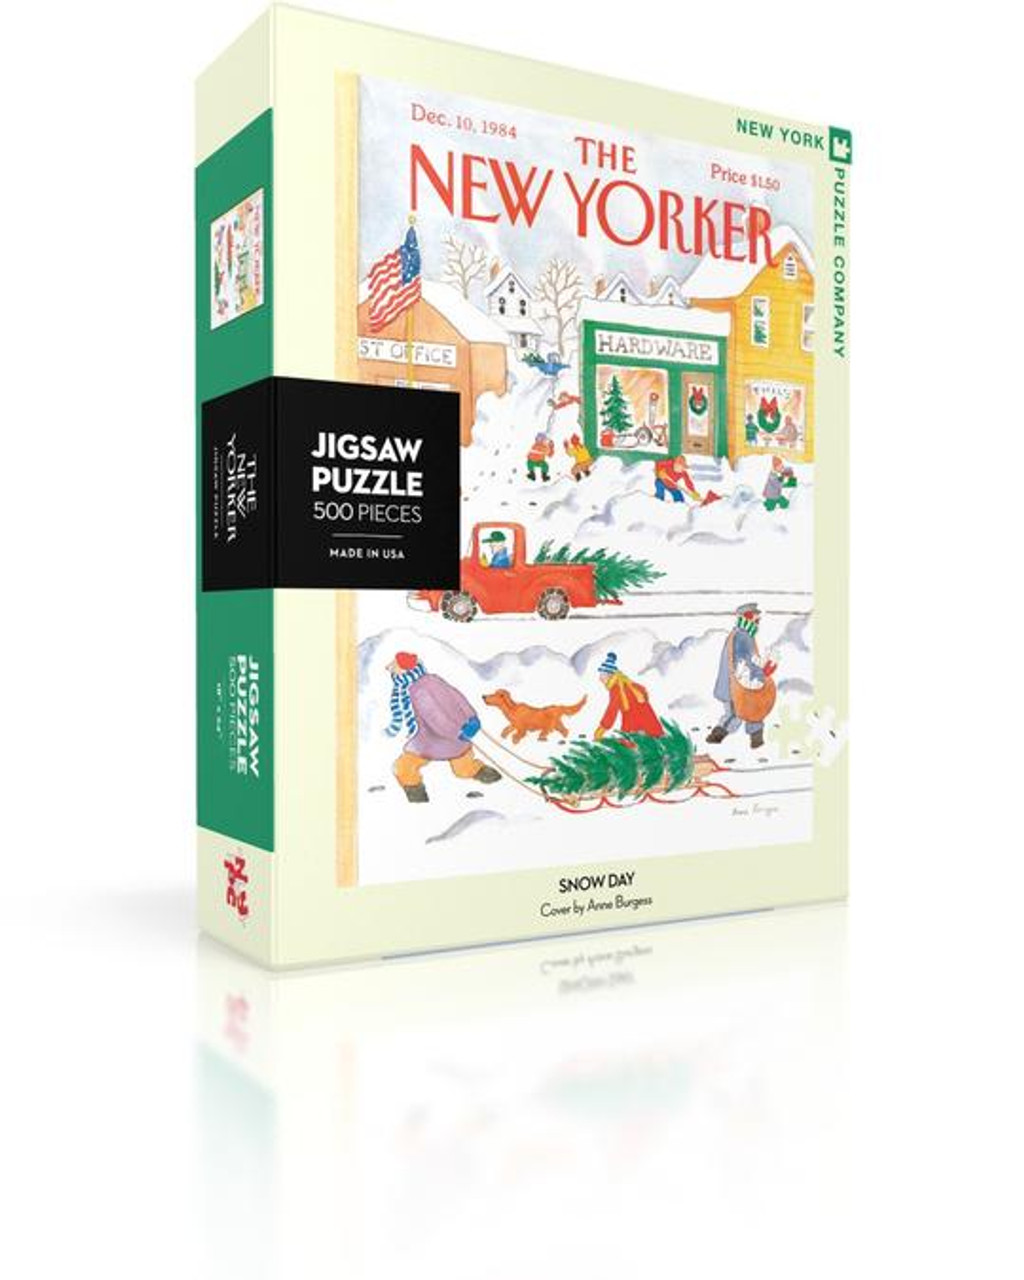 Snow Day - 500 pieces - New Yorker